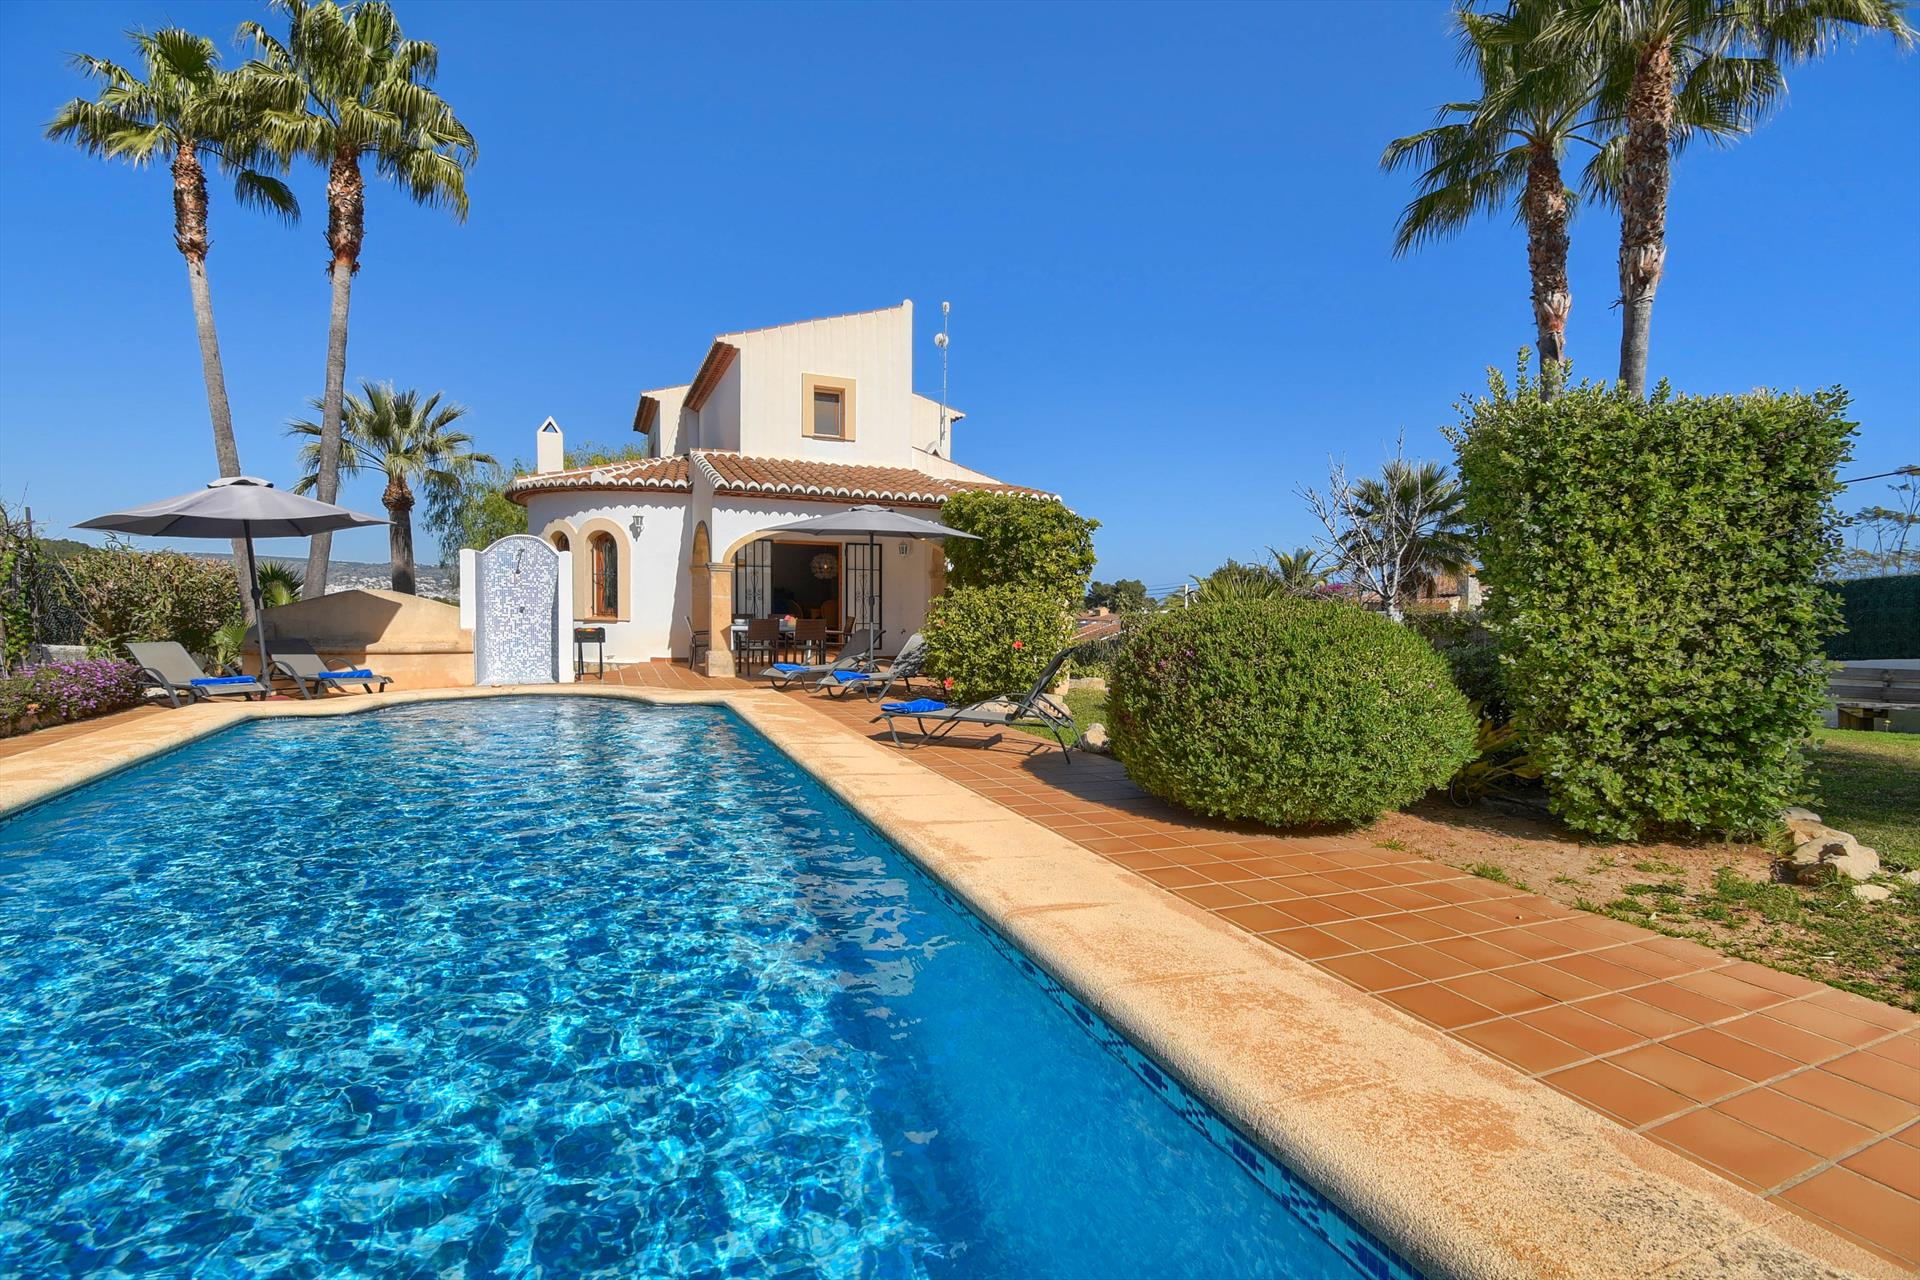 El Signo de Aries, Classic and comfortable villa  with private pool in Javea, on the Costa Blanca, Spain for 6 persons.....